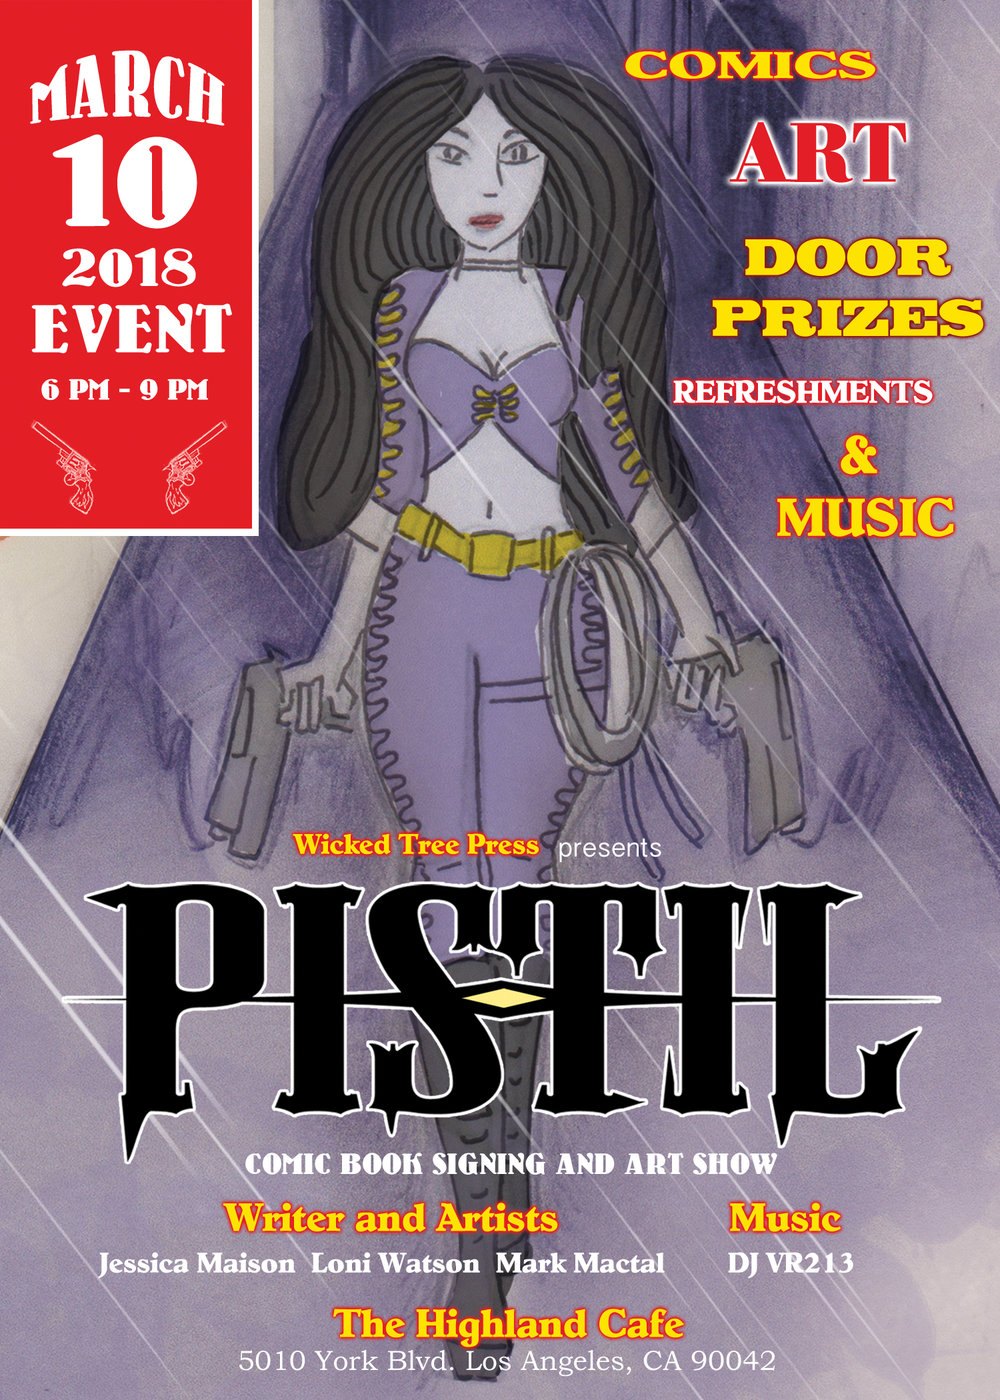 Pistil March 10th event.jpg